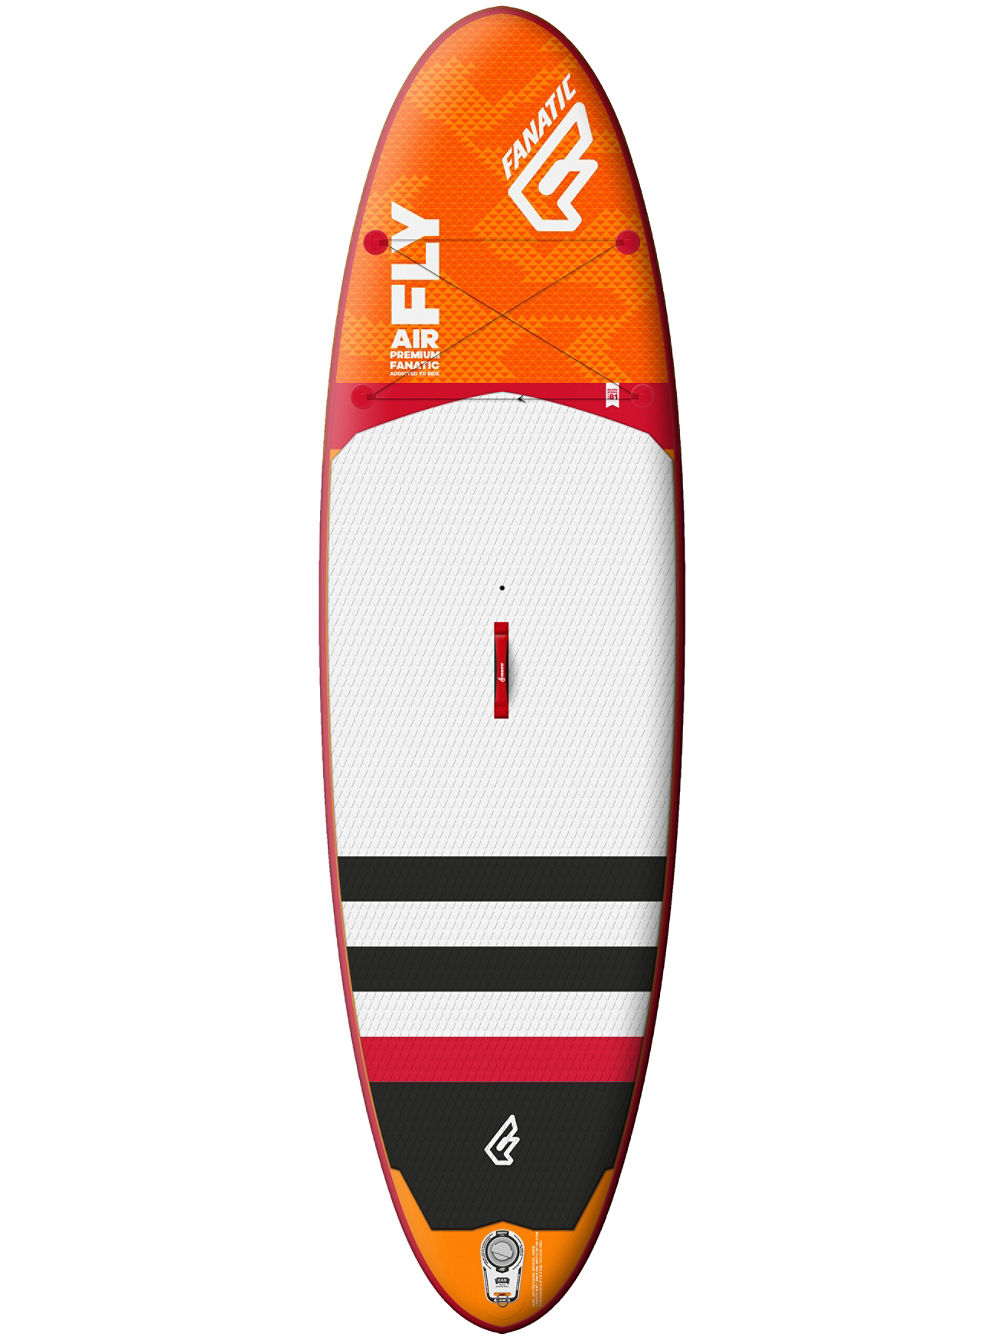 Fly Air Premium 10.4 SUP Board